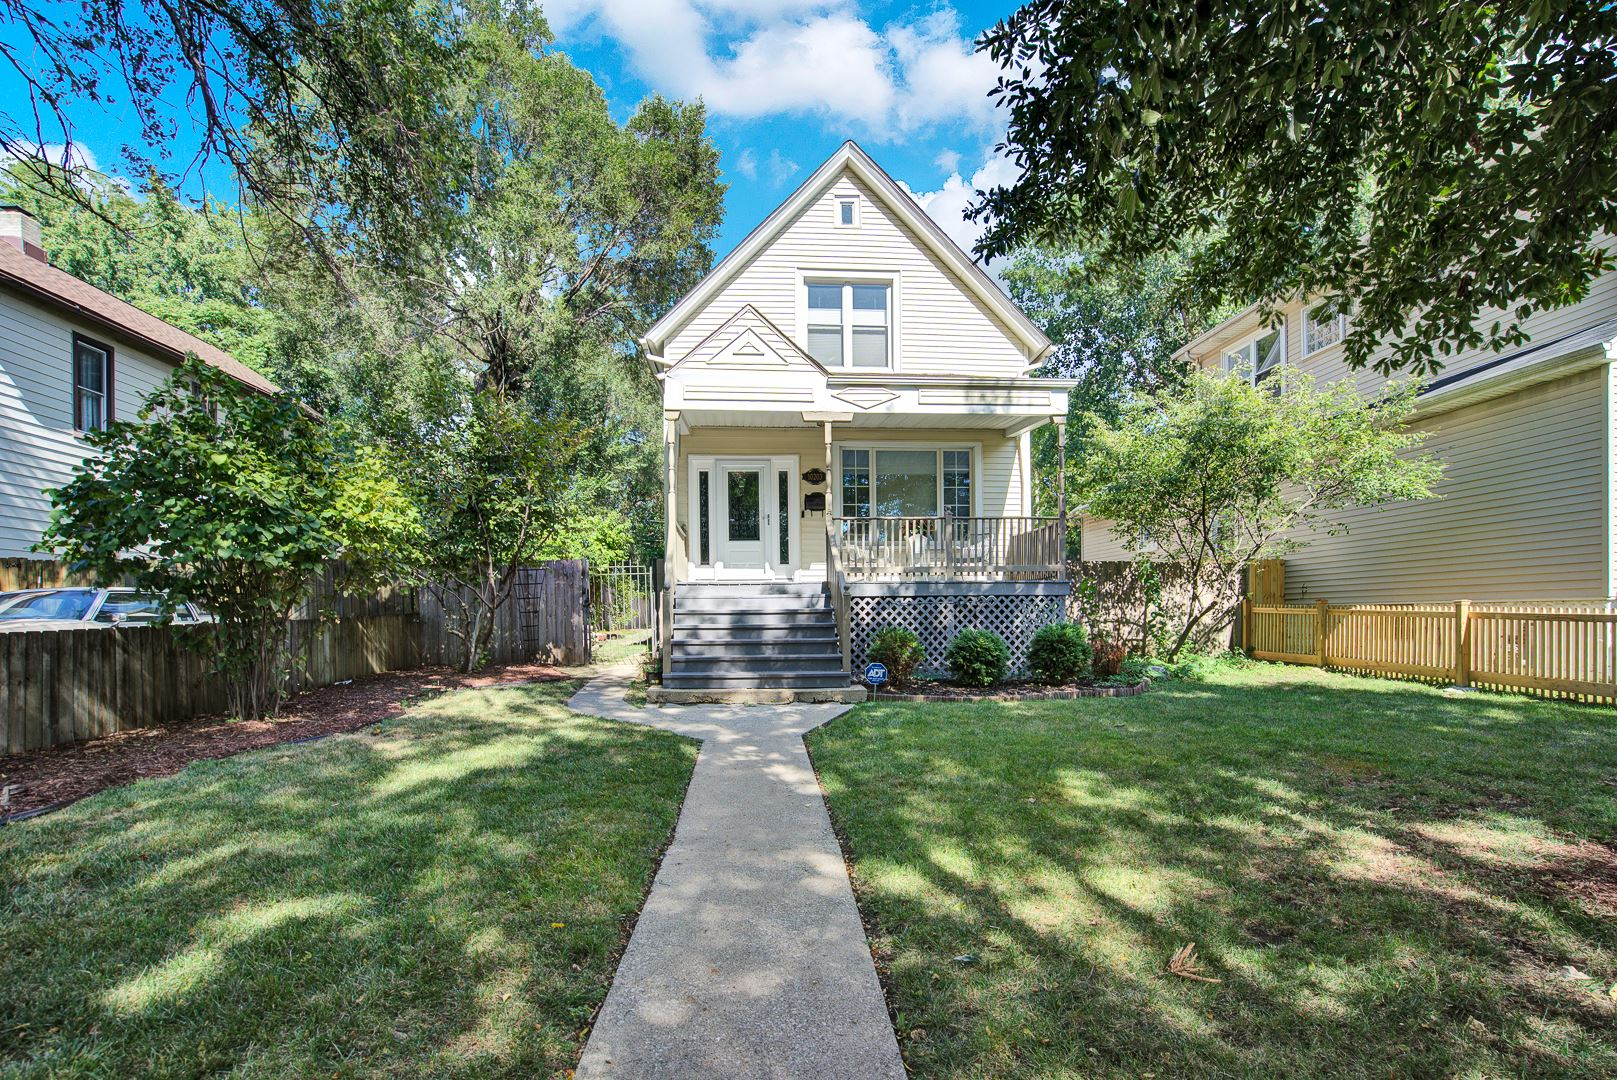 10203 S BEVERLY Avenue, Chicago, IL 60643 - MLS#: 11222512